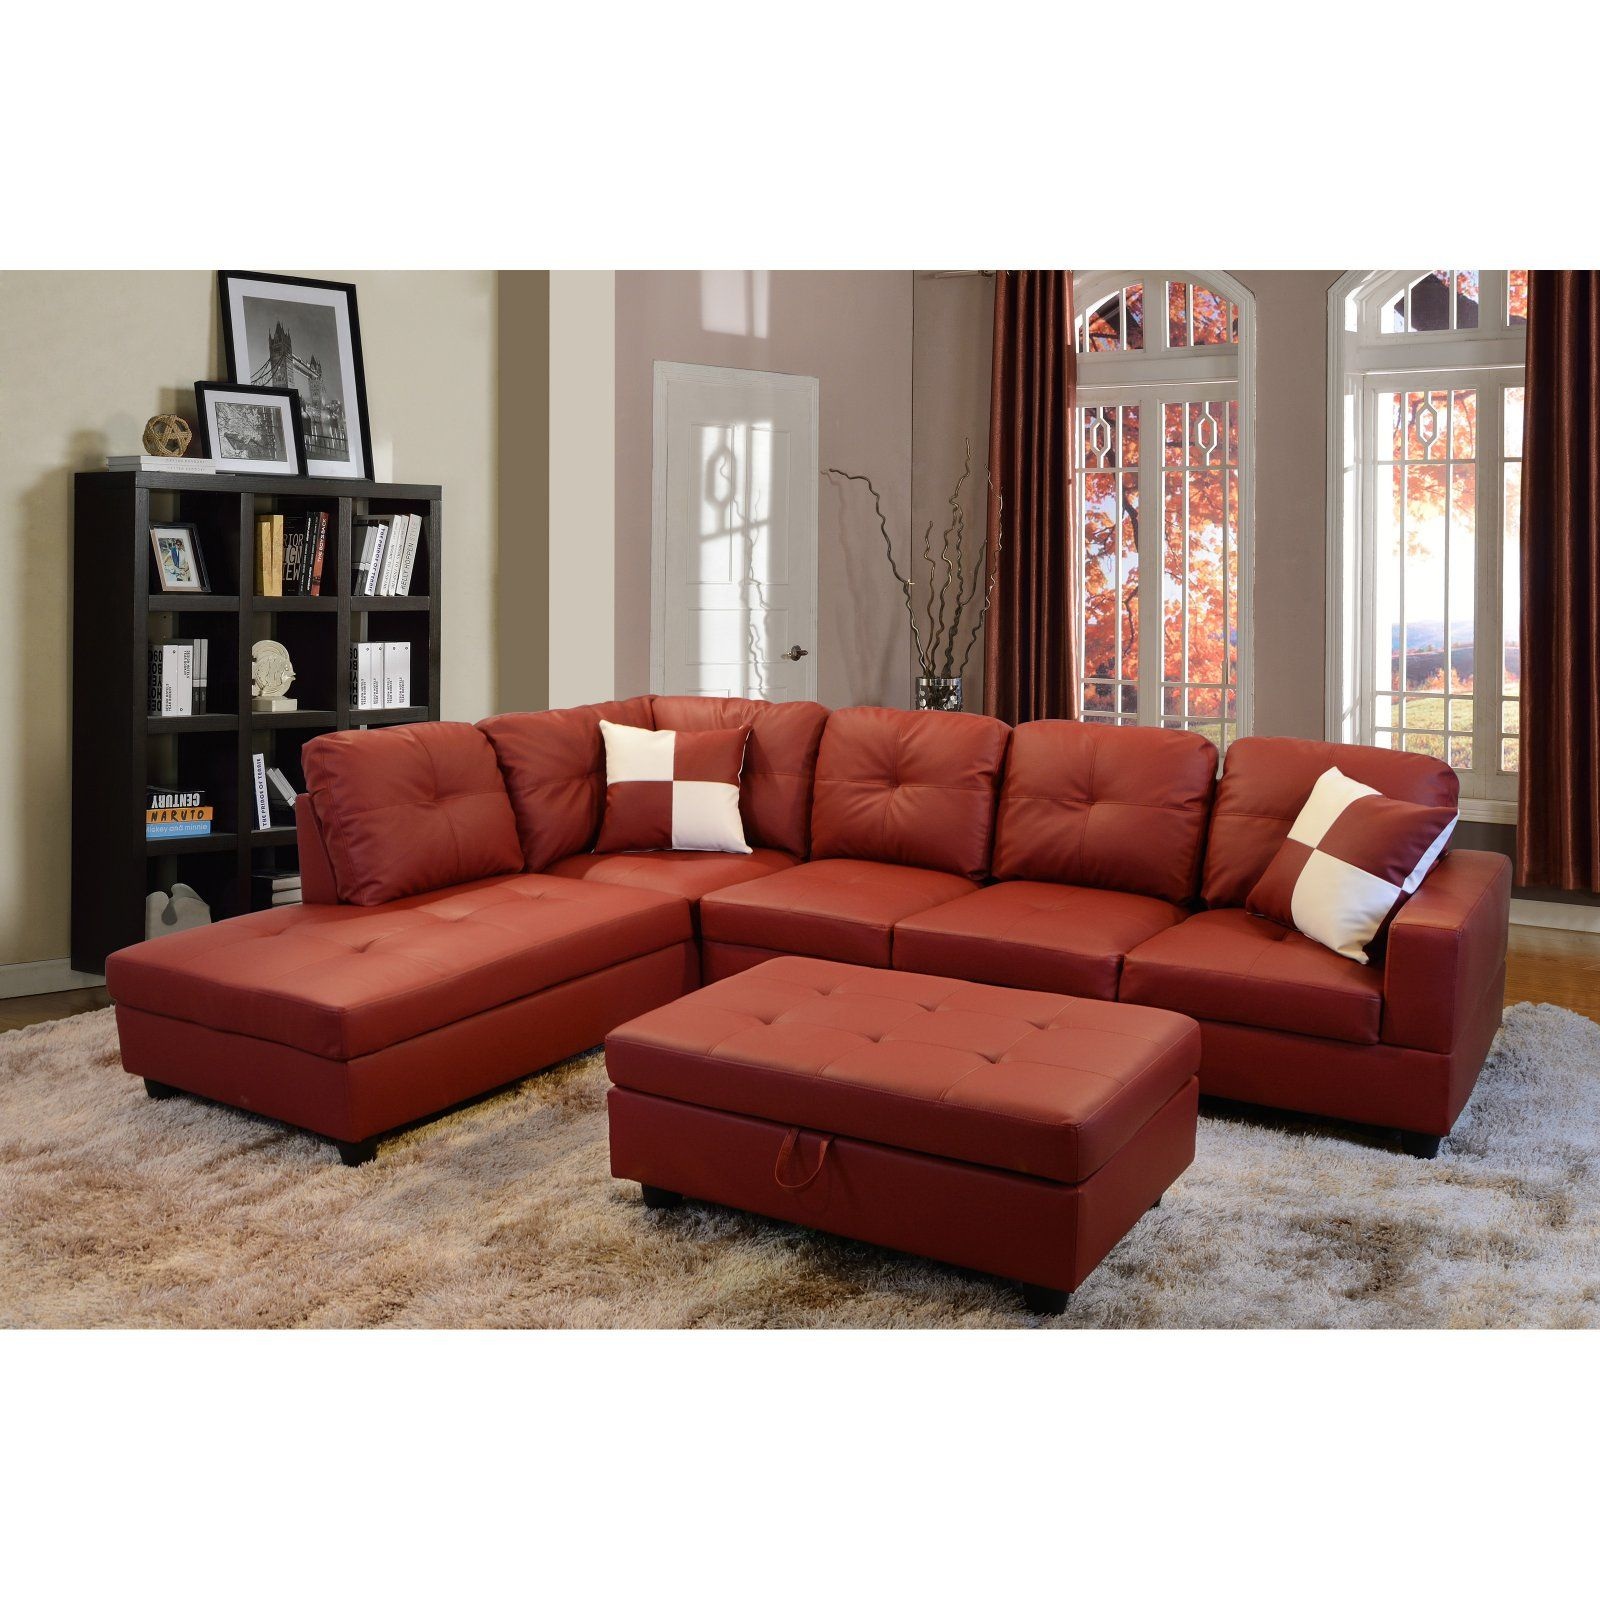 Tremendous Beverly Fine Furniture 3 Piece Faux Leather Sectional Sofa Gmtry Best Dining Table And Chair Ideas Images Gmtryco